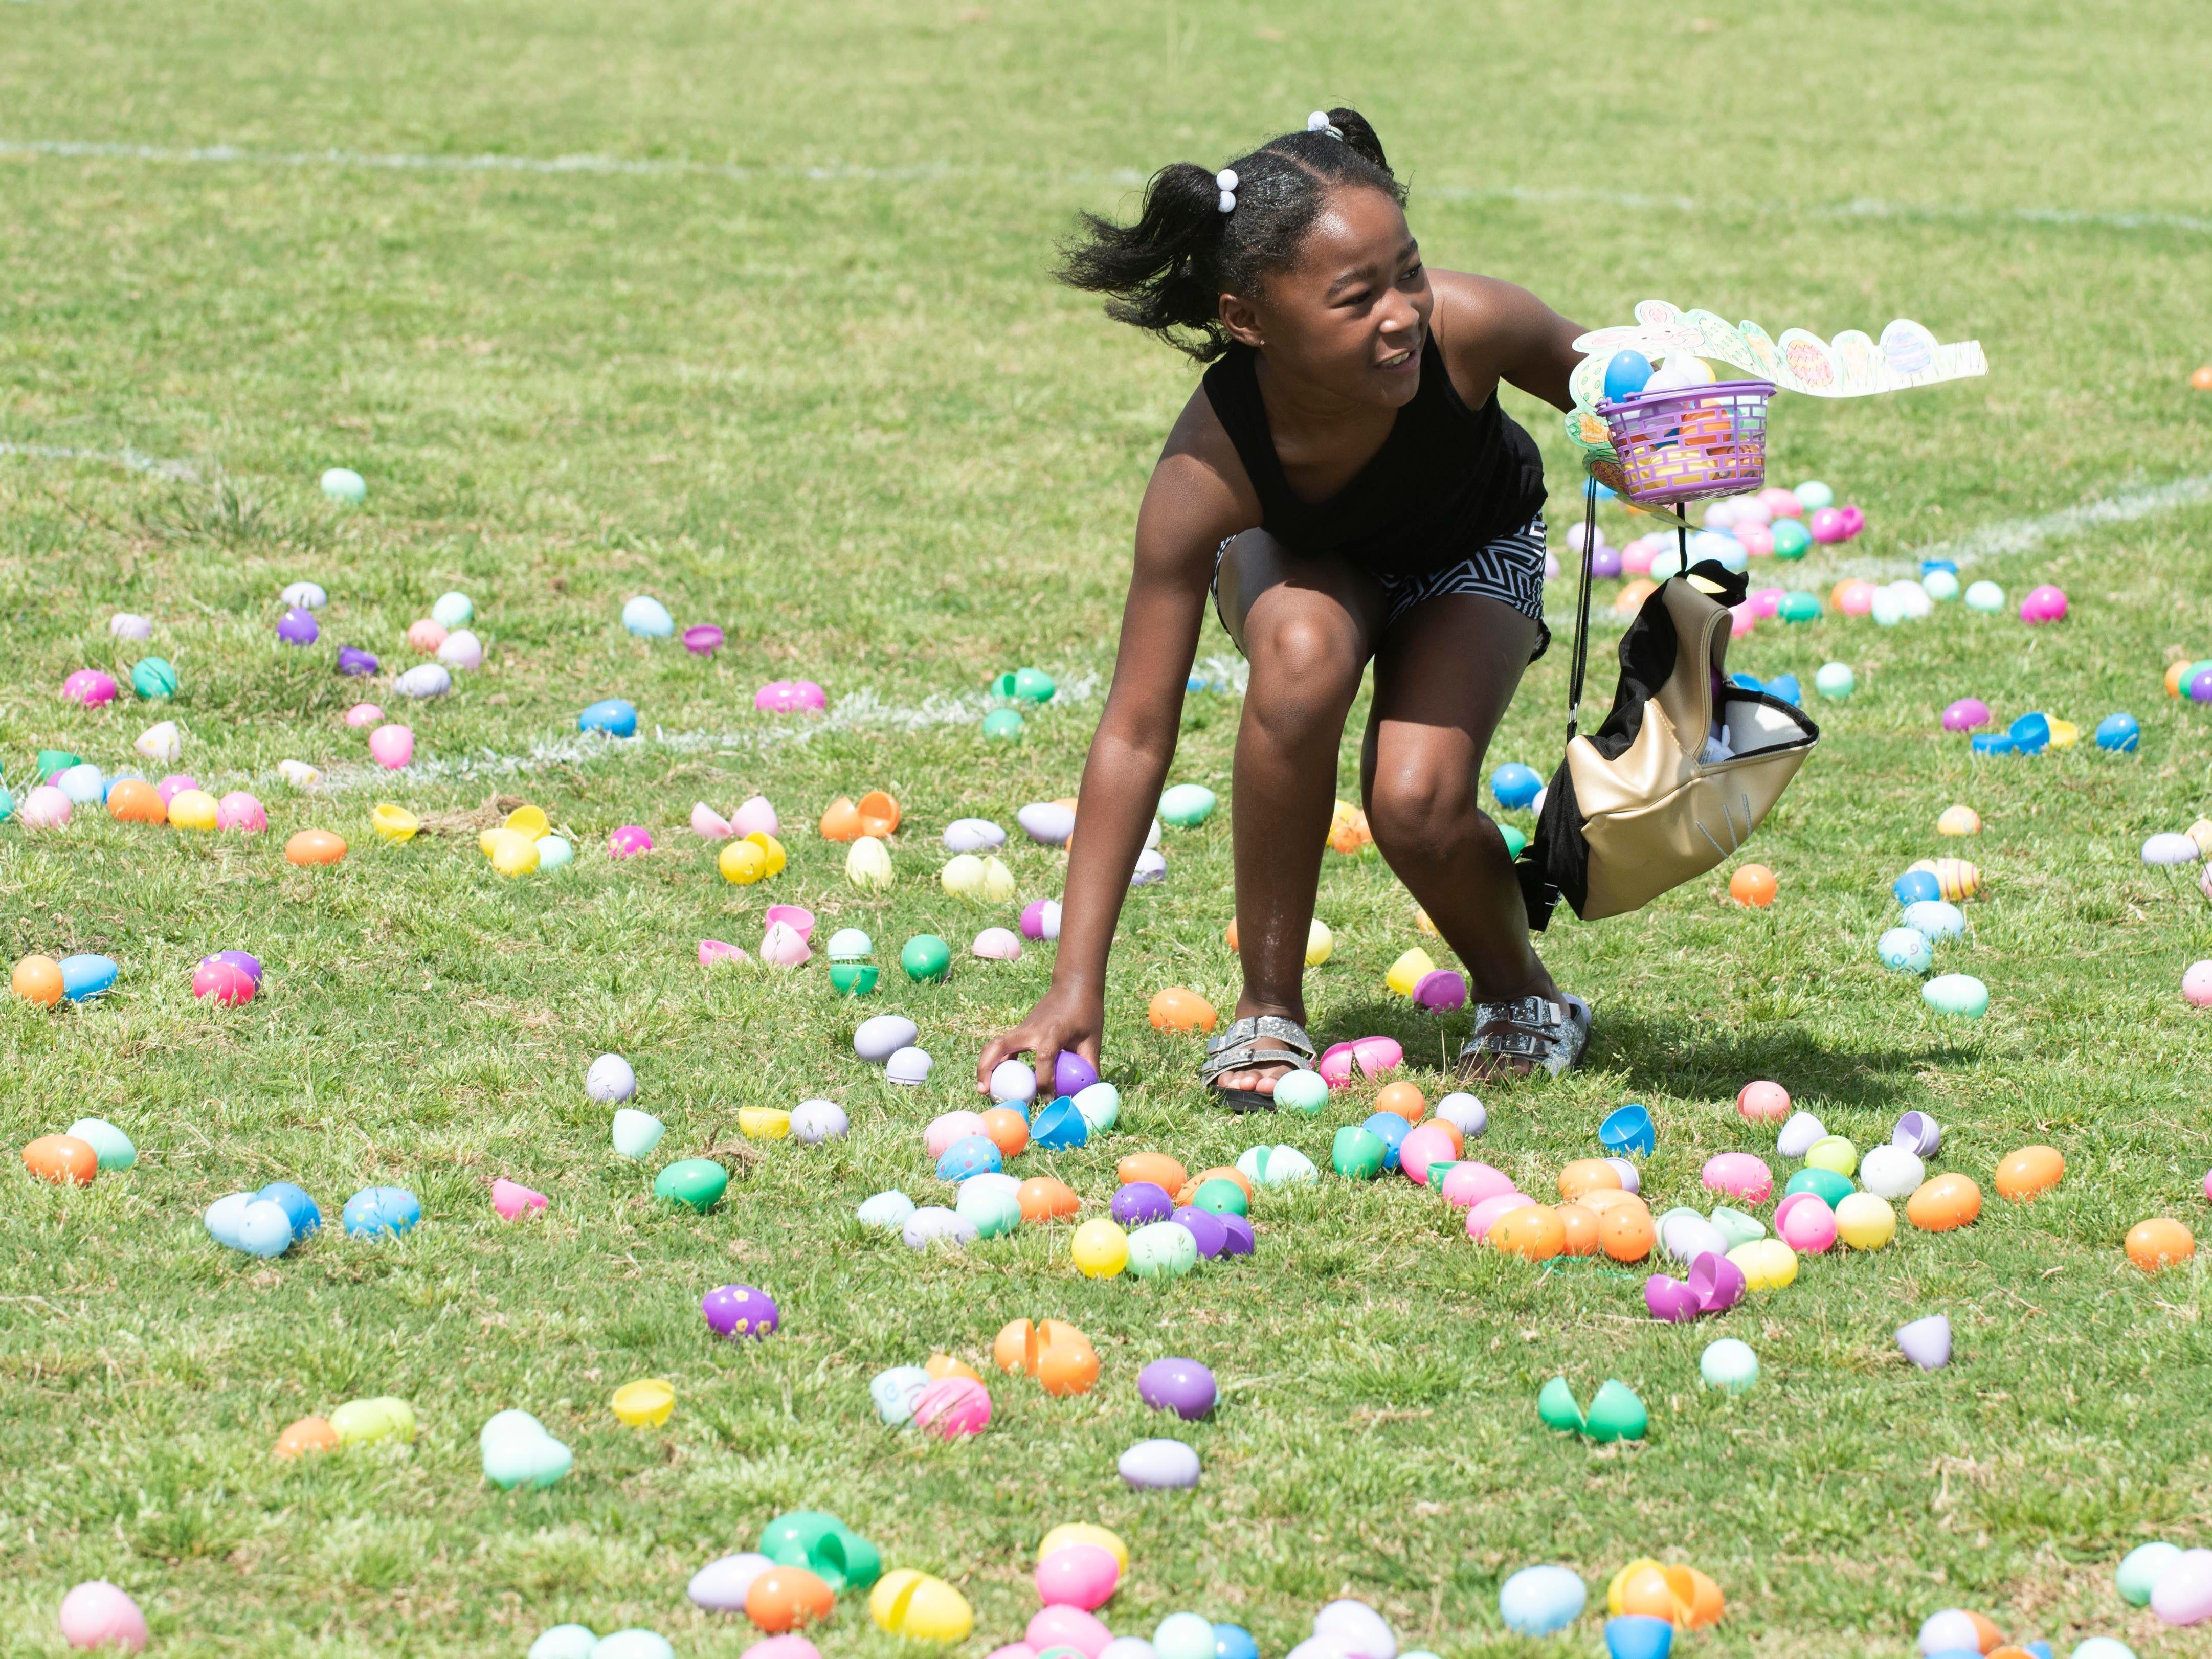 """Elaine Witt, 10, of Stuart, picks up plastic eggs during the Spring Community Mixer and Egg Hunt on Saturday, April 13, 2019, at the 10th Street Community Center Guy Davis Sports Complex in Stuart. The hunt was divided into four, separate age groups. Children picked up the eggs and traded them in for bags of candy.  """"It's nice to do these things around the holidays to get the community out and give them a free event to enjoy with their family and a place where they can meet other members of the community and learn what's going in their area,"""" said Jessica Tharp, not pictured, the recreation program supervisor for the City of Stuart and the organizer of the event. The mixer also included golden eggs, face painting, carnival games, inflatables and free popcorn, snow cones and a hot dog lunch."""